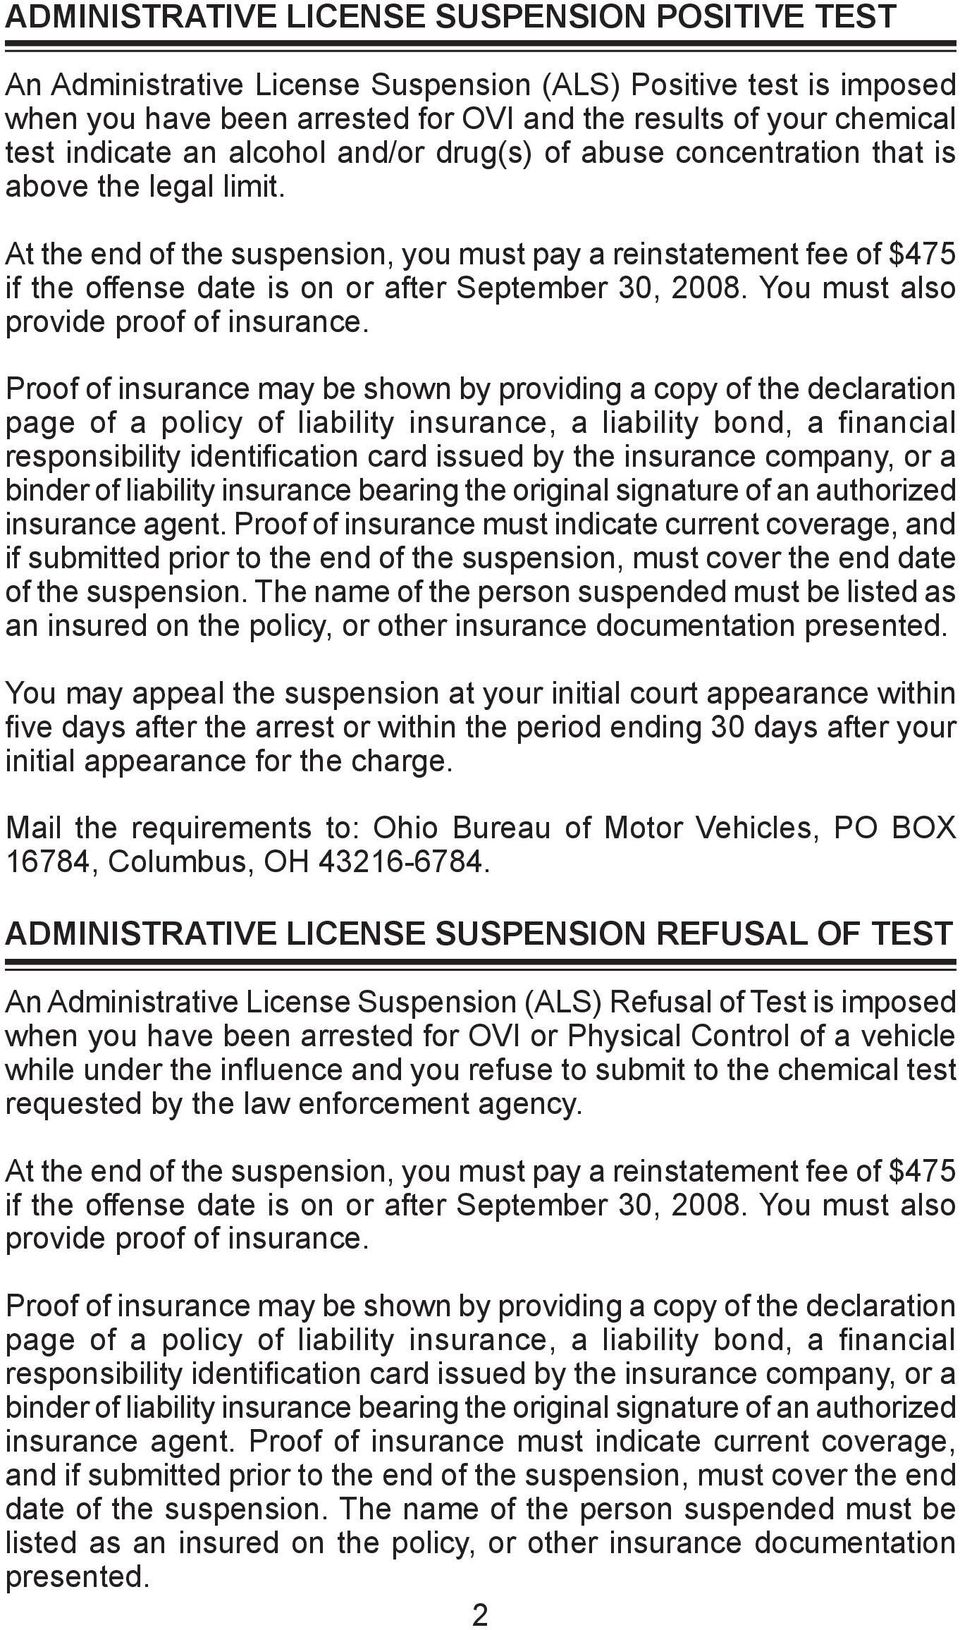 At the end of the suspension, you must pay a reinstatement fee of $475 if the offense date is on or after September 30, 2008. You must also provide proof of insurance.